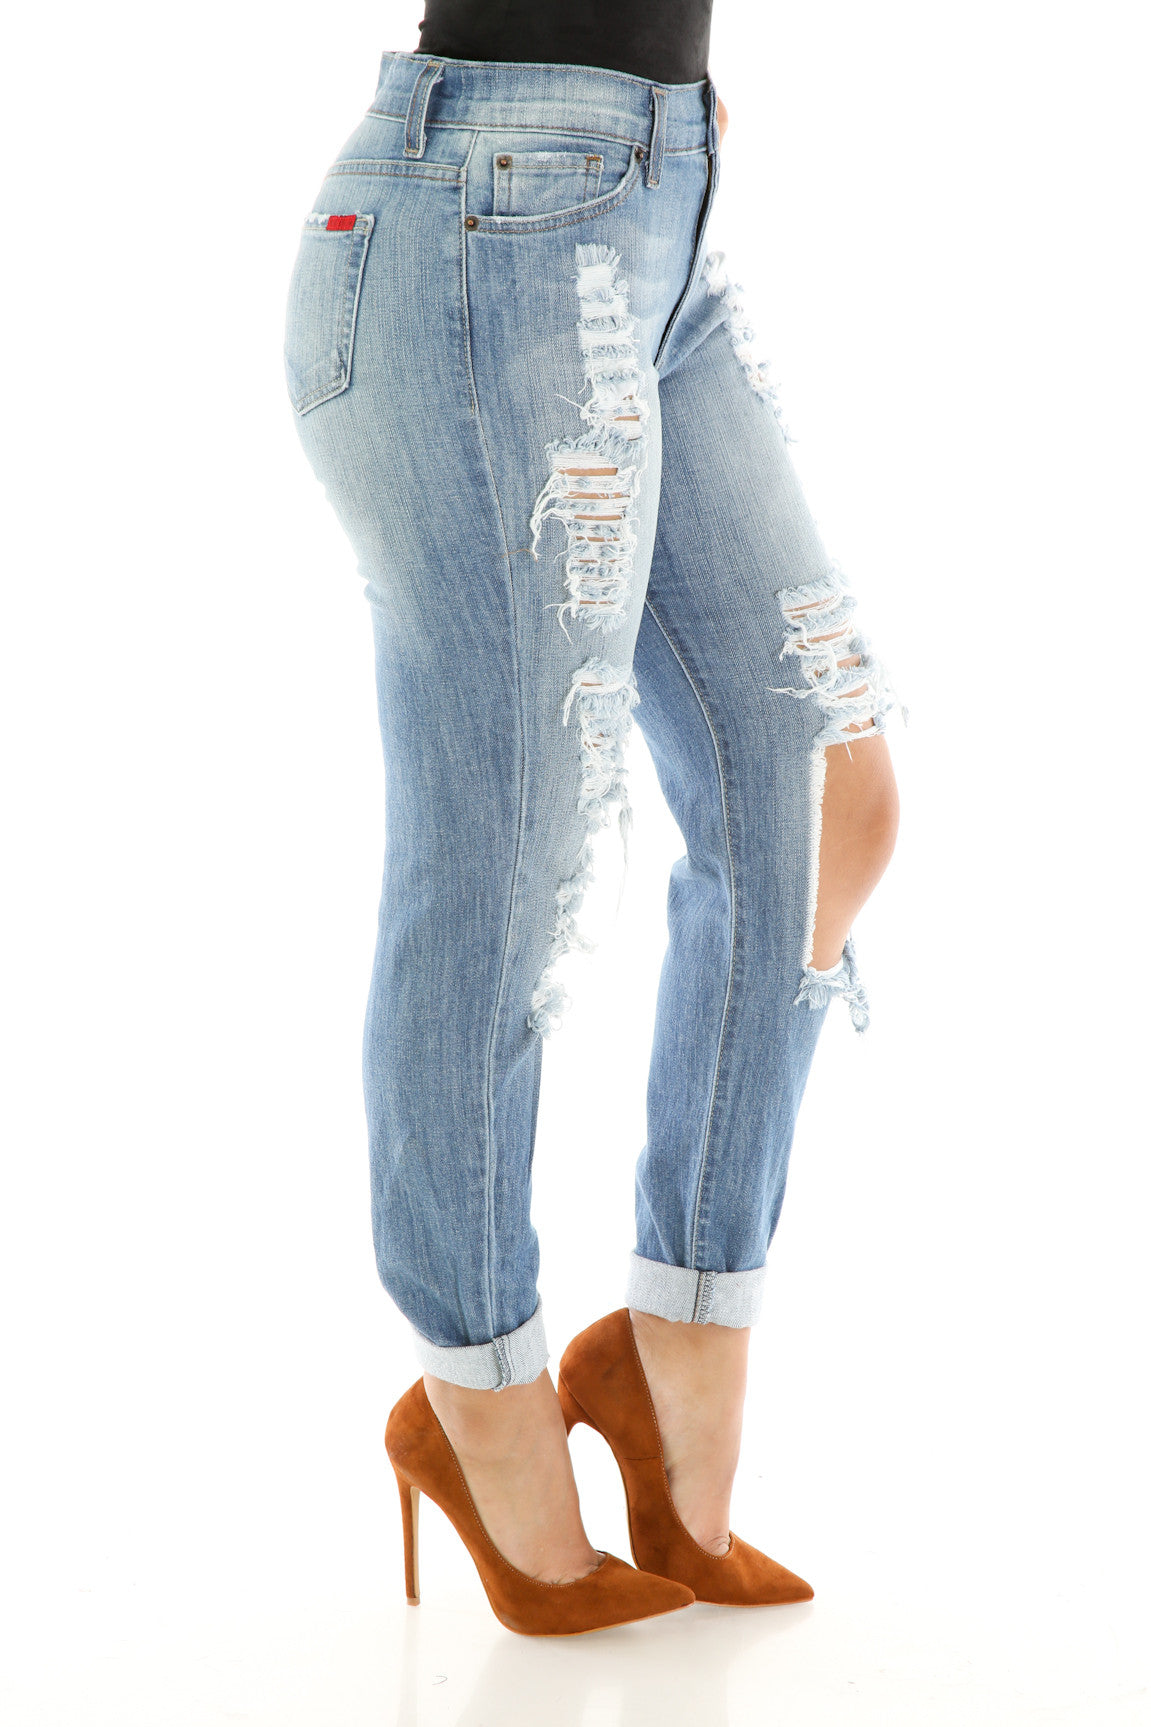 Denim Distress Jeans , Bottoms - Fashion Trend LA, Fashion Trend LA  - 4